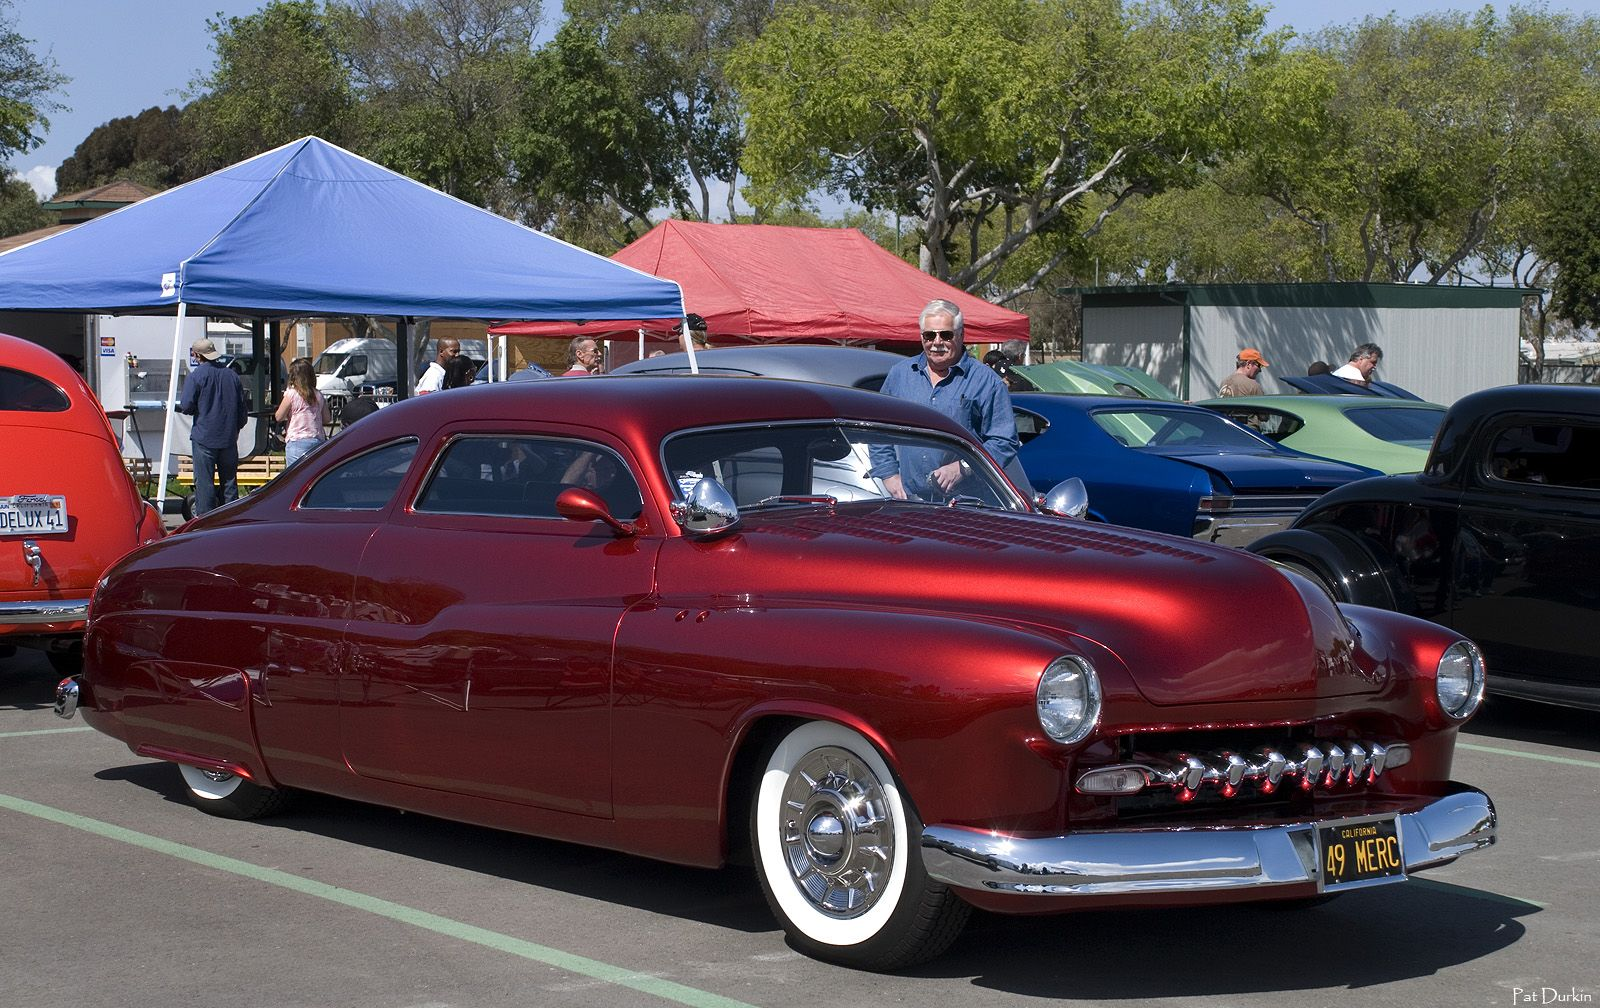 1949 mercury lead sled candy apple